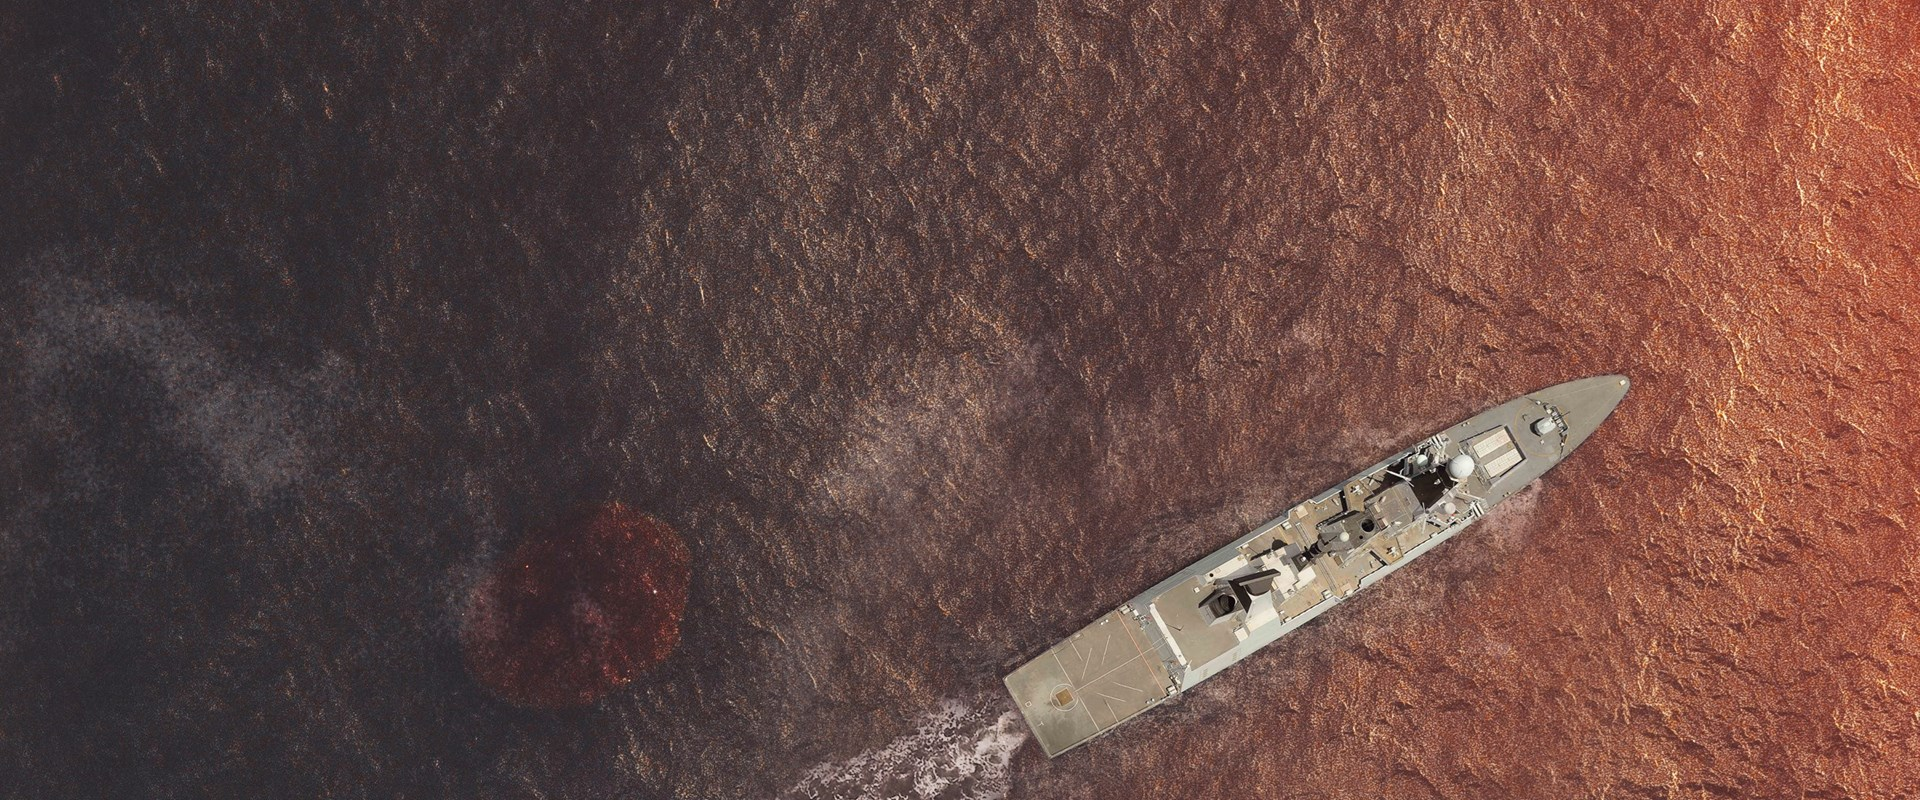 Bird eye of a ship